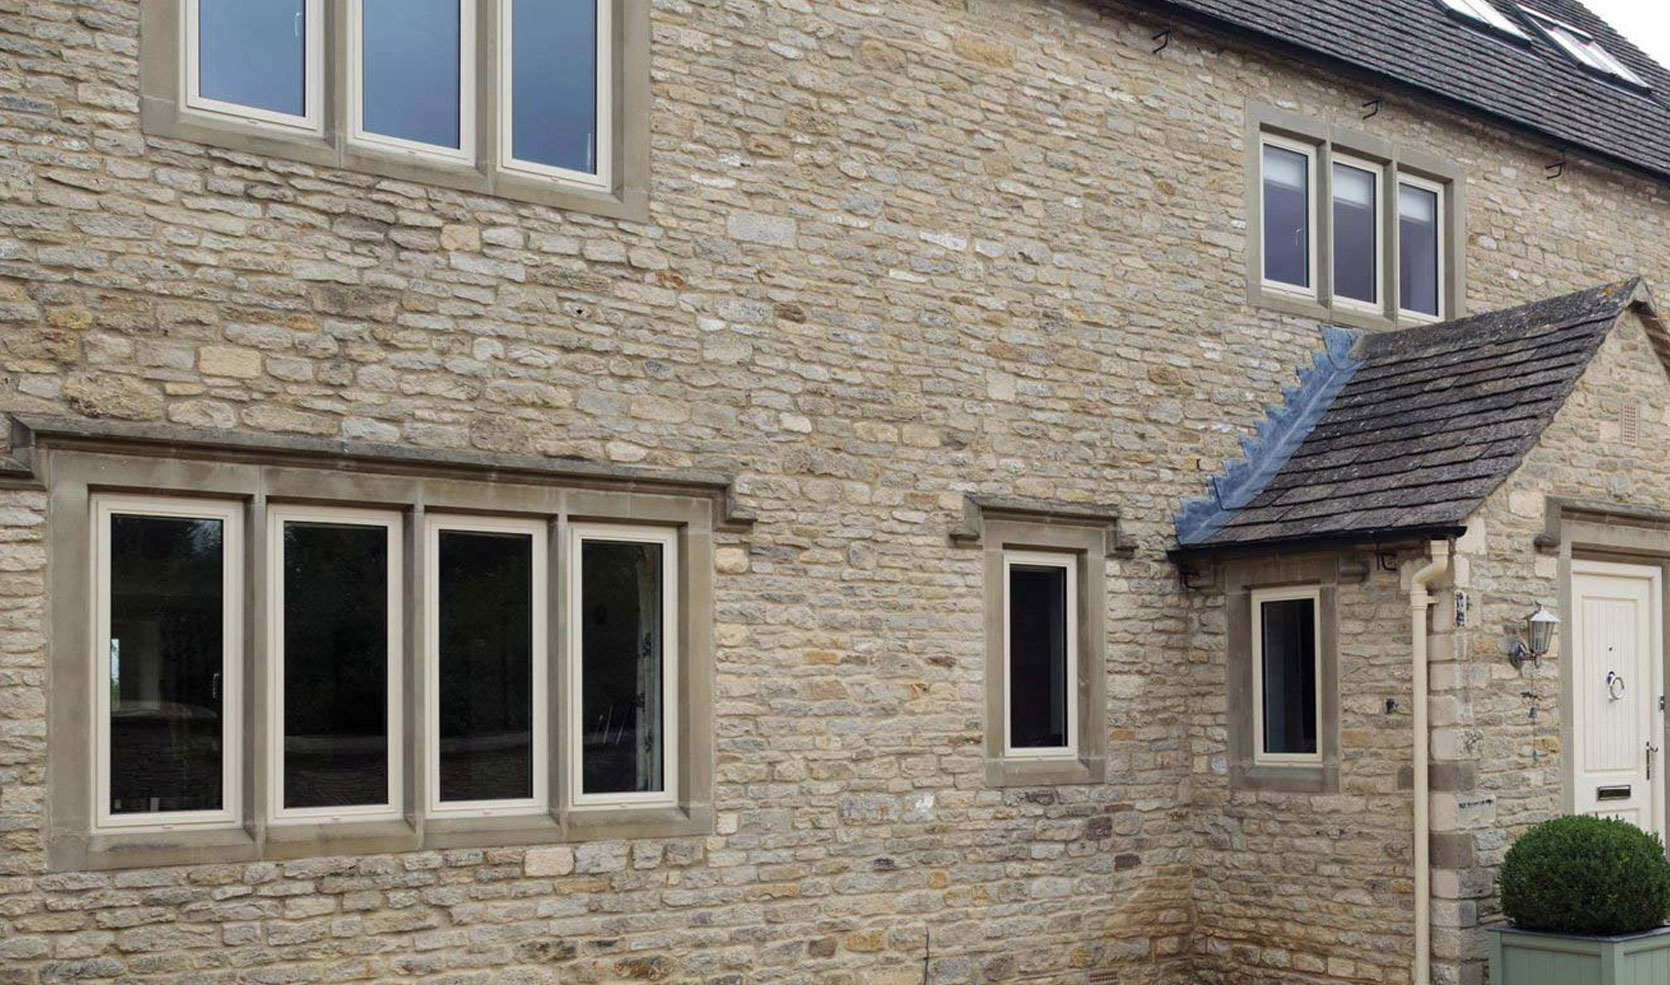 Shaws of brighton aluminium windows installers